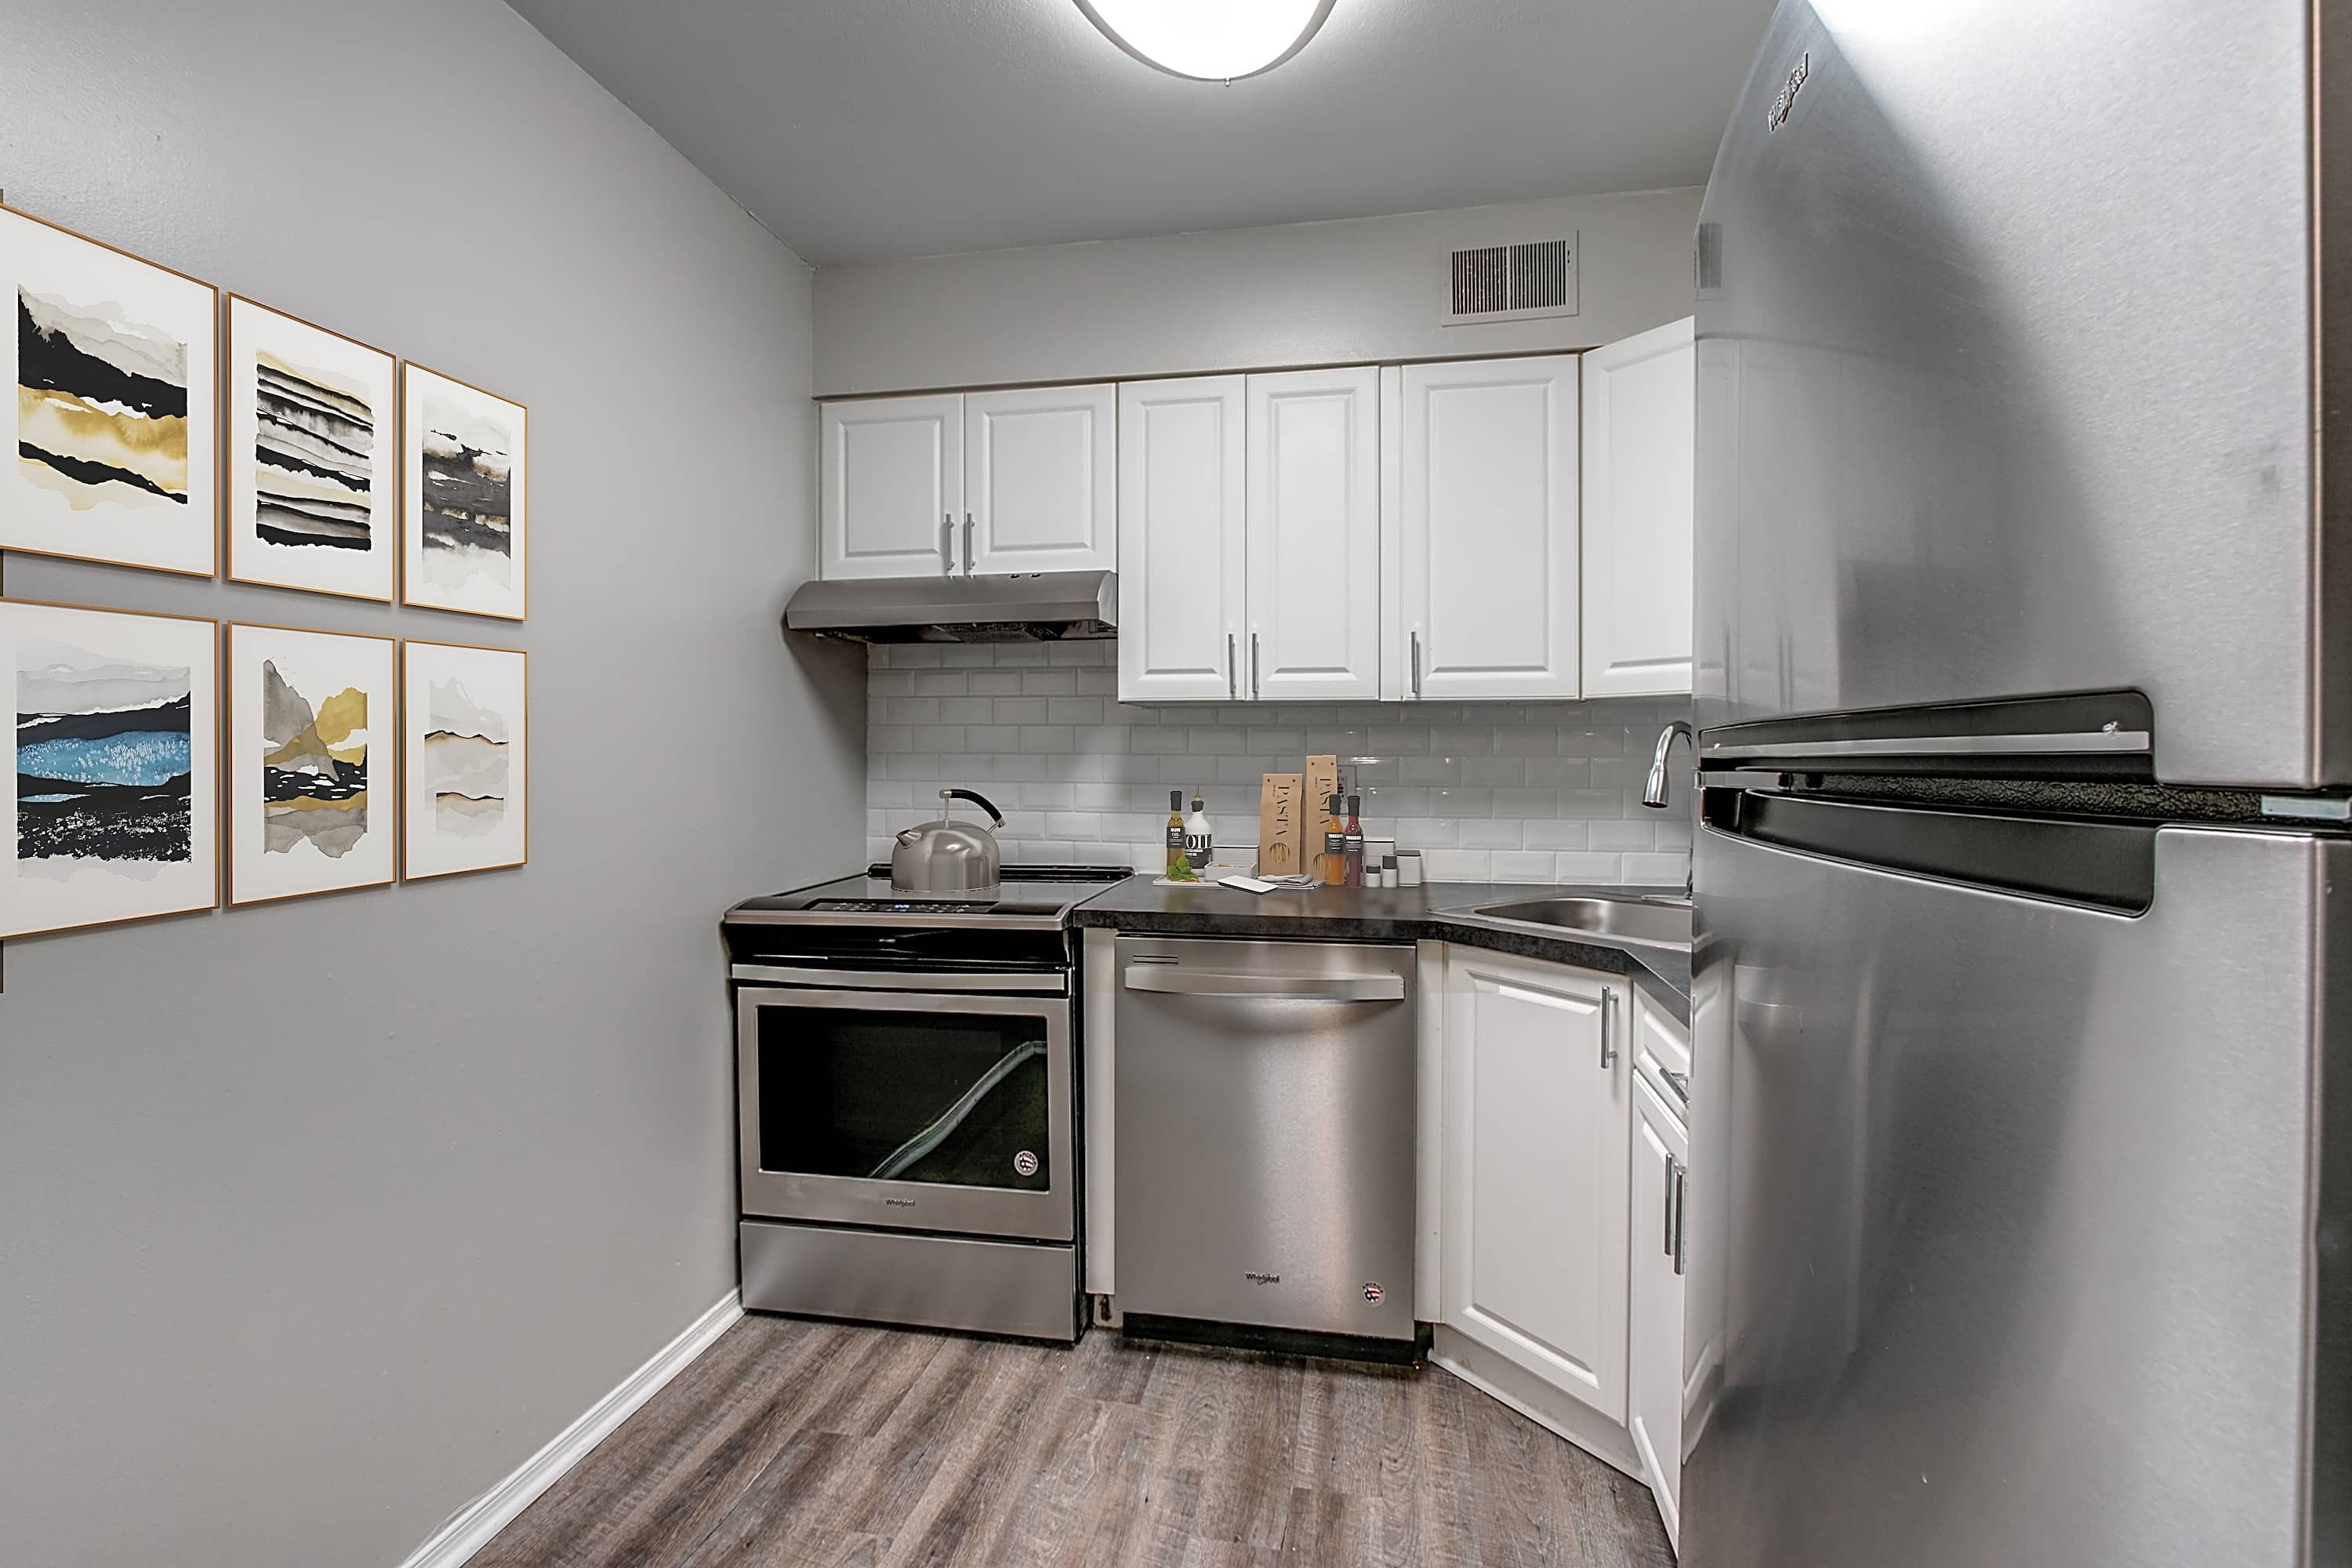 Apartments Near Delaware Foxwood for University of Delaware Students in Newark, DE